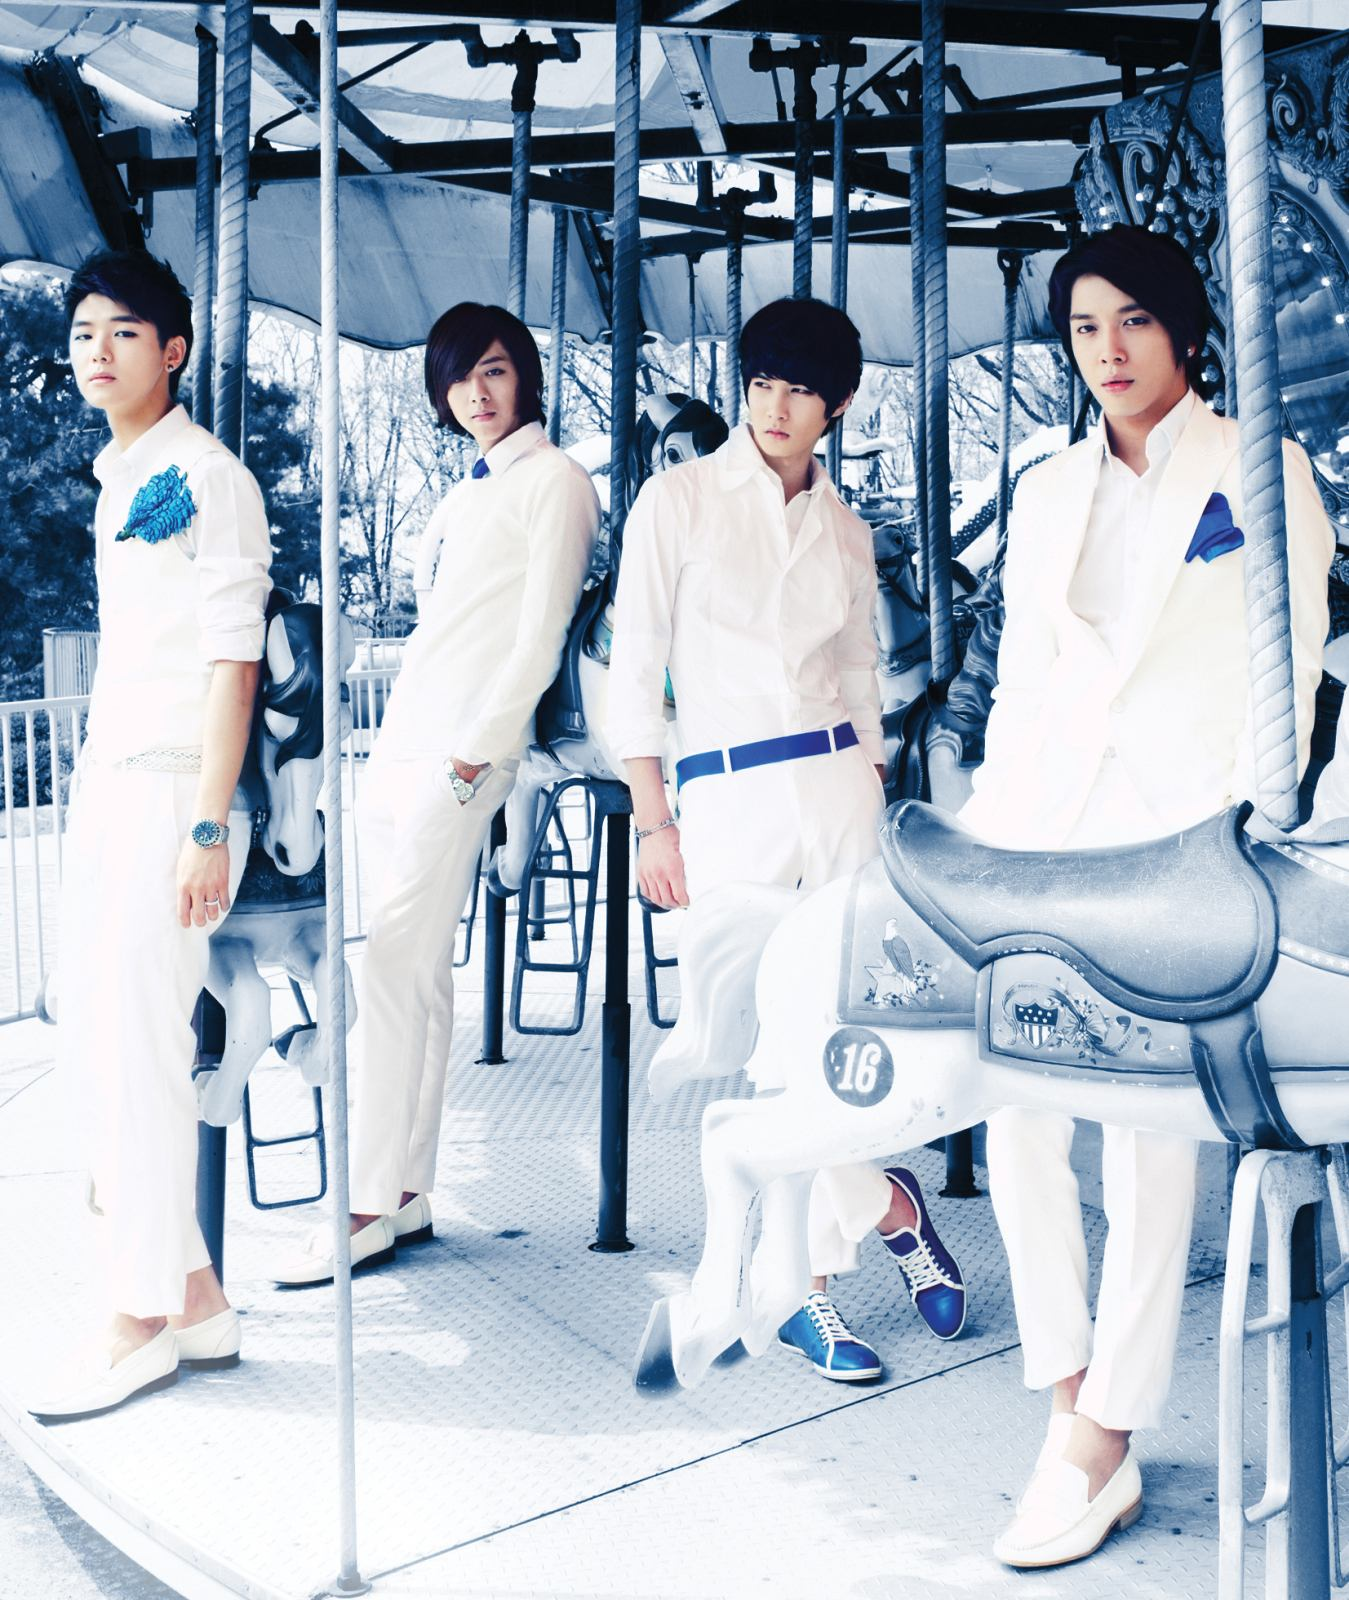 http://minewishinee.files.wordpress.com/2010/05/cn-blue-2.jpg